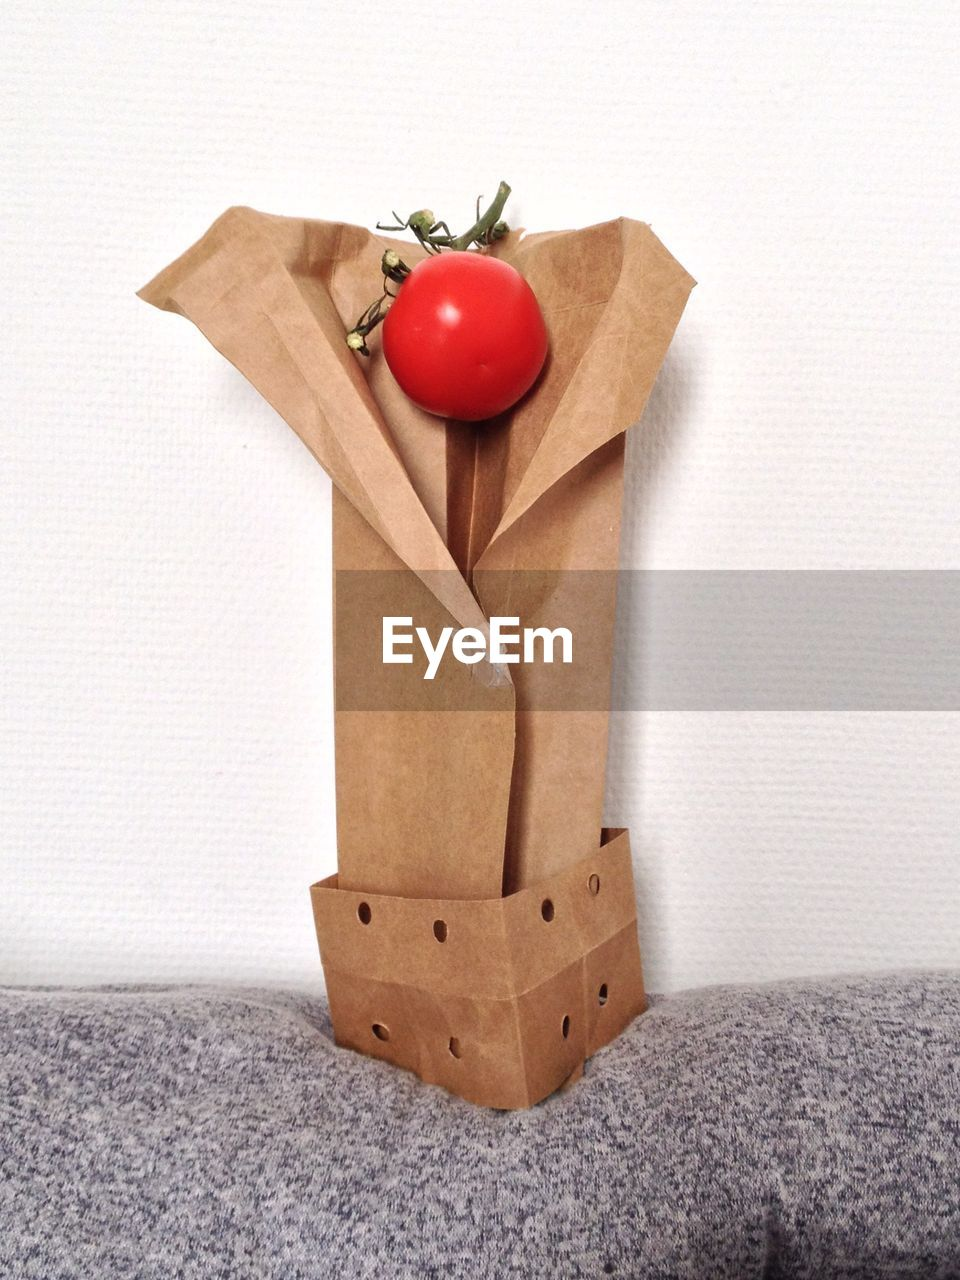 indoors, cardboard box, no people, freshness, healthy eating, close-up, day